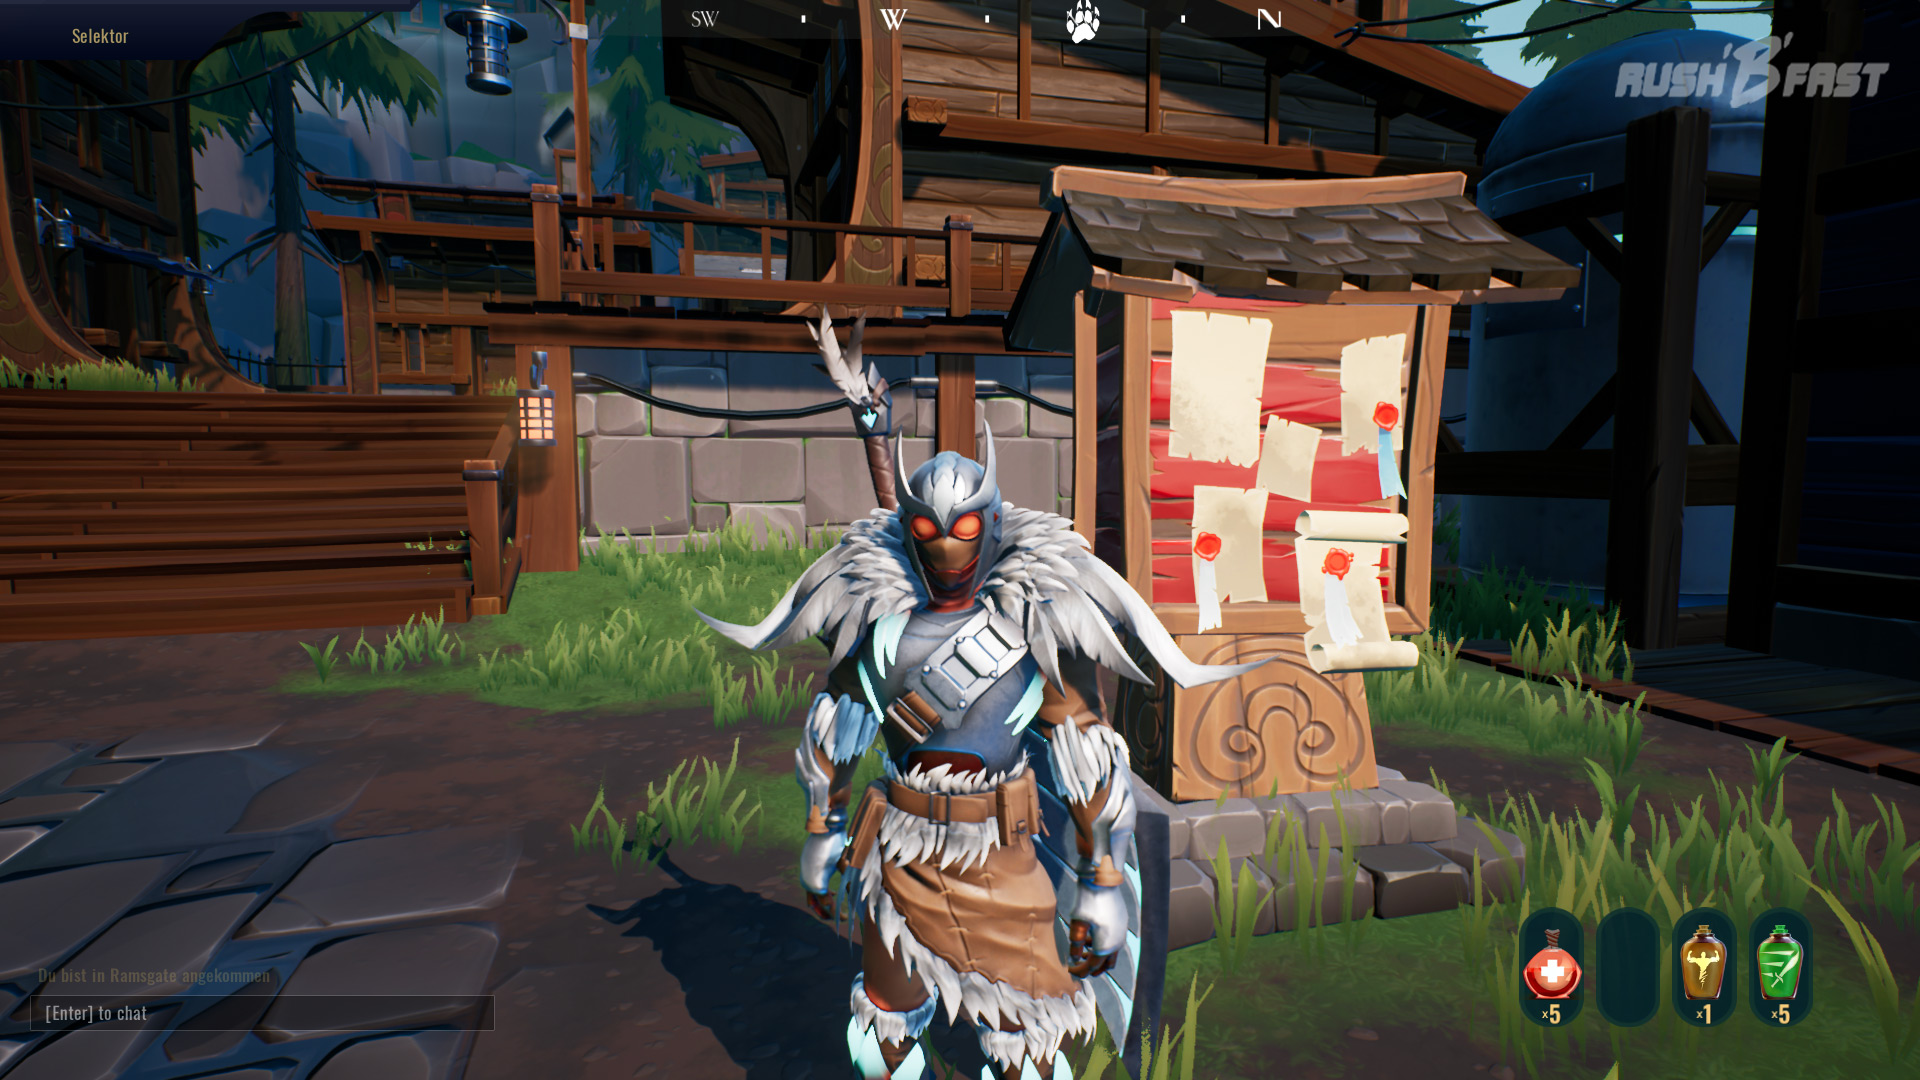 rushBfast_dauntless_openbeta_quest_05282018